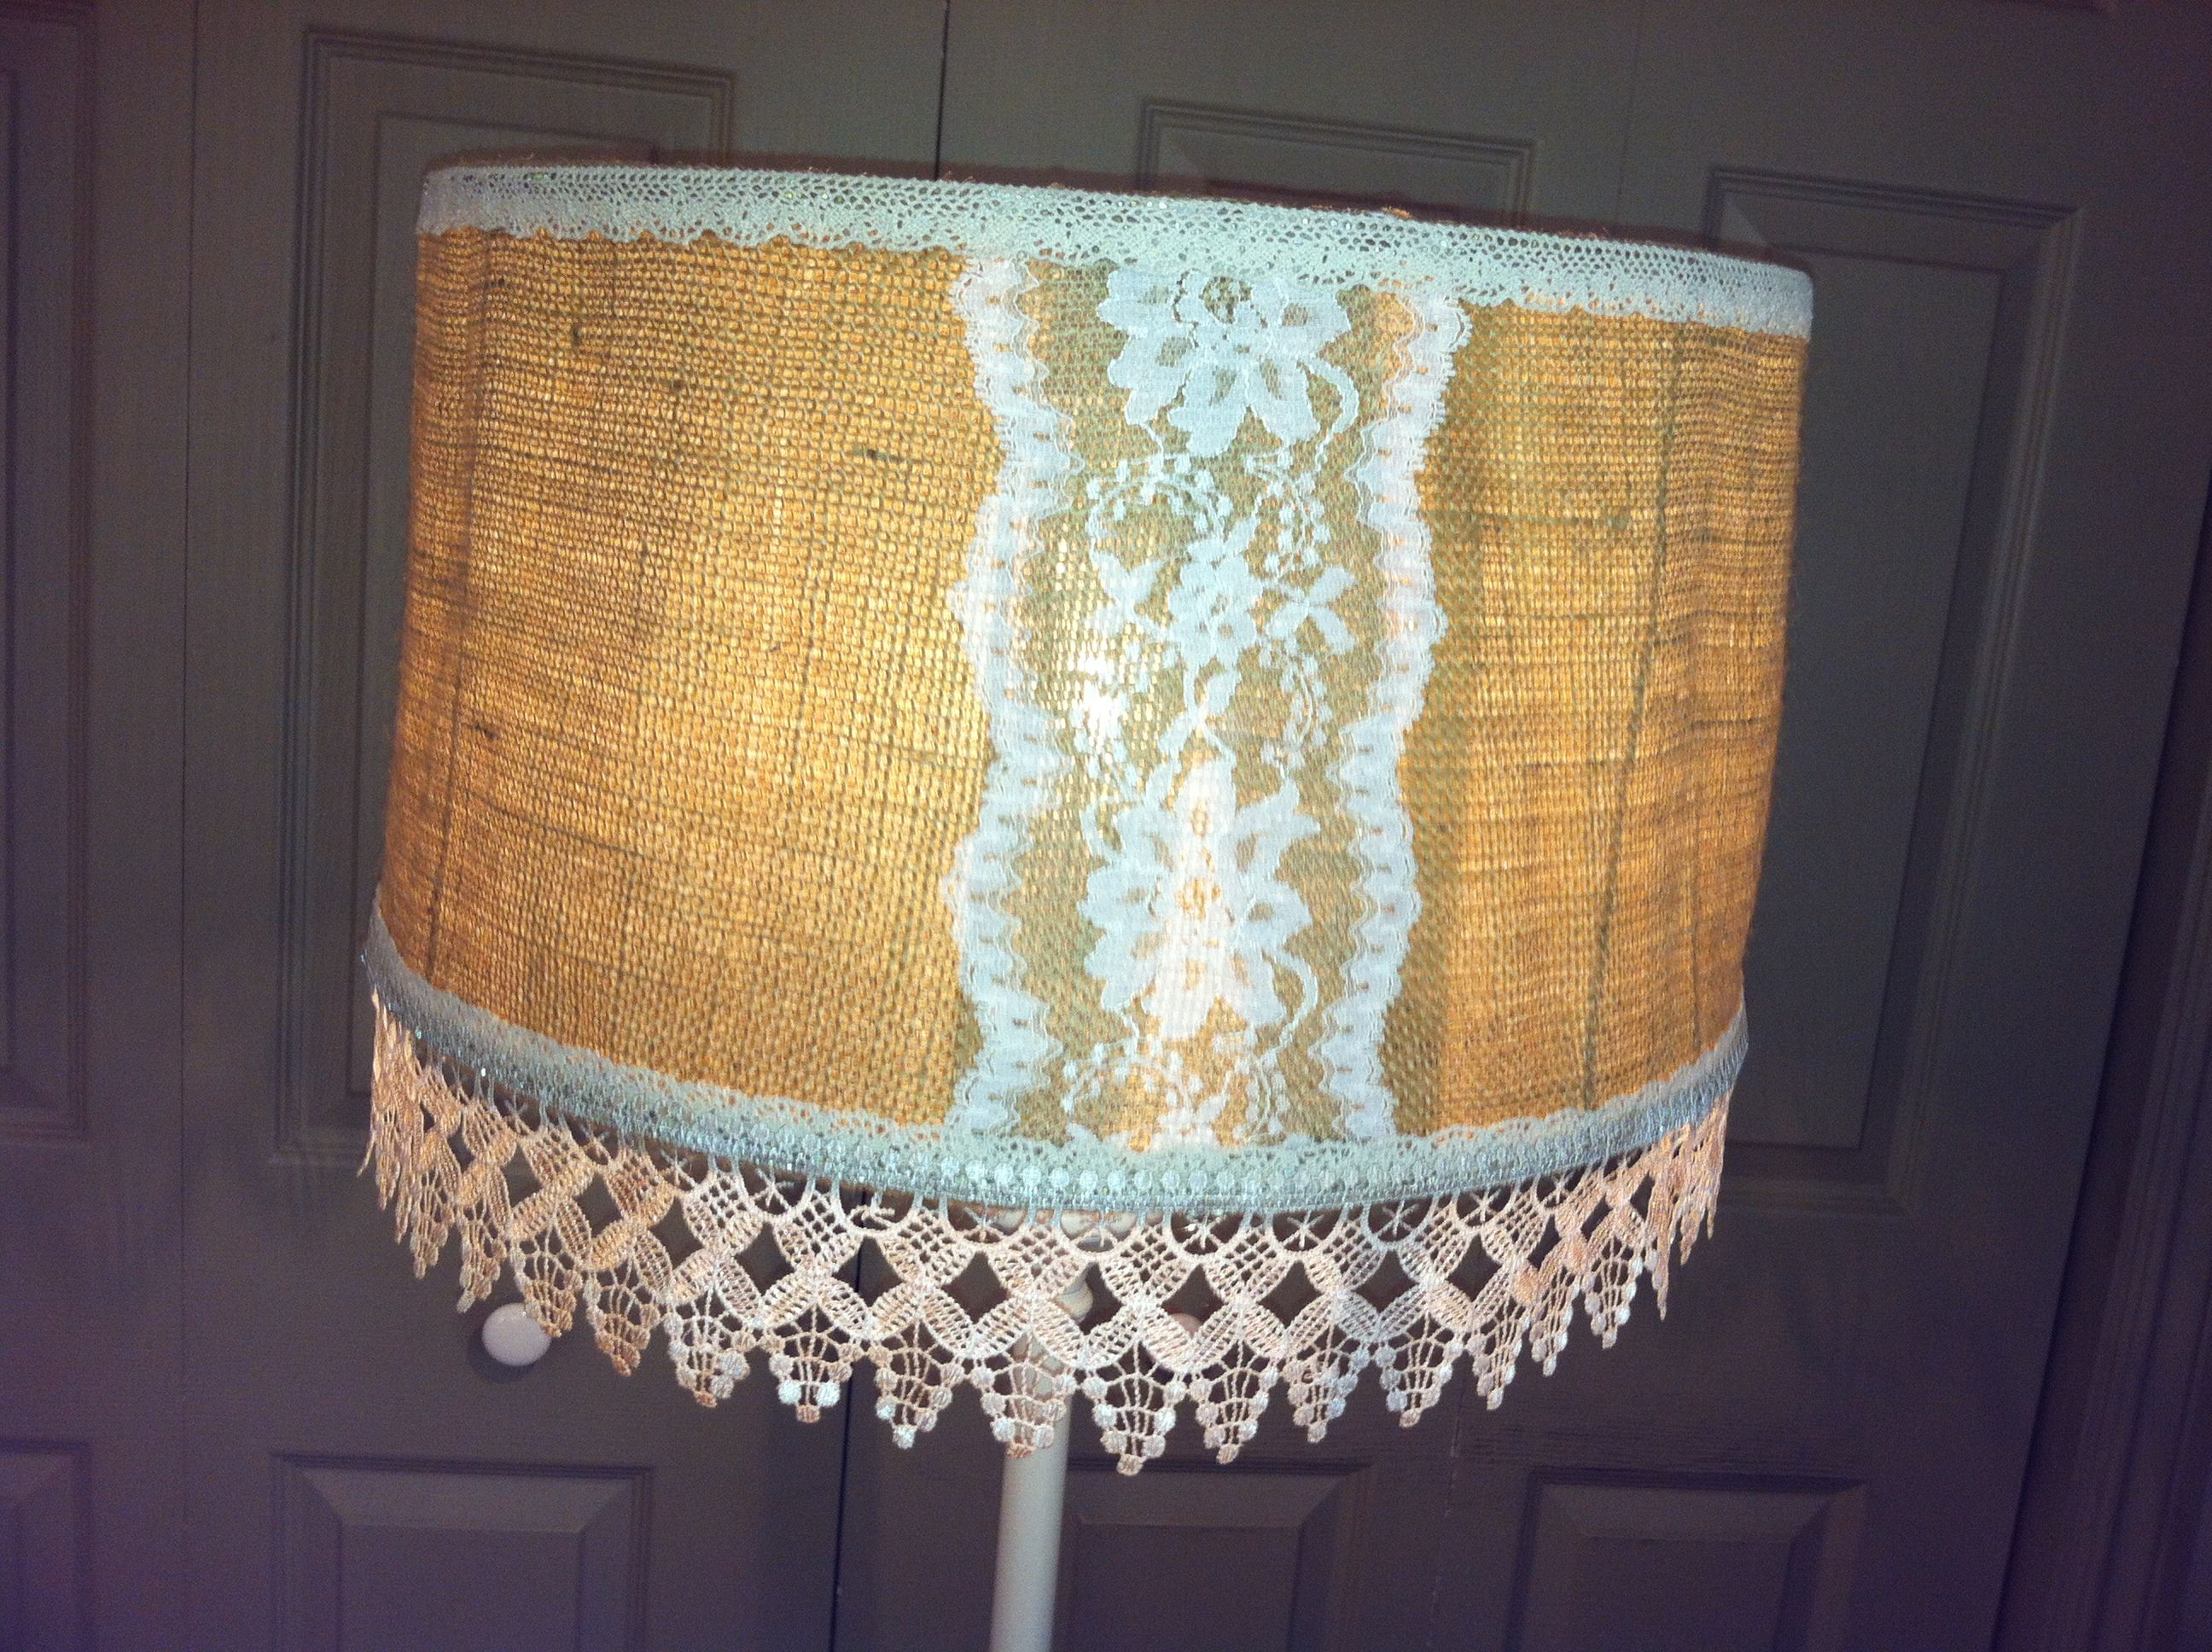 Shabby chic burlap lamp shade | Shabby diy, Diy light ...